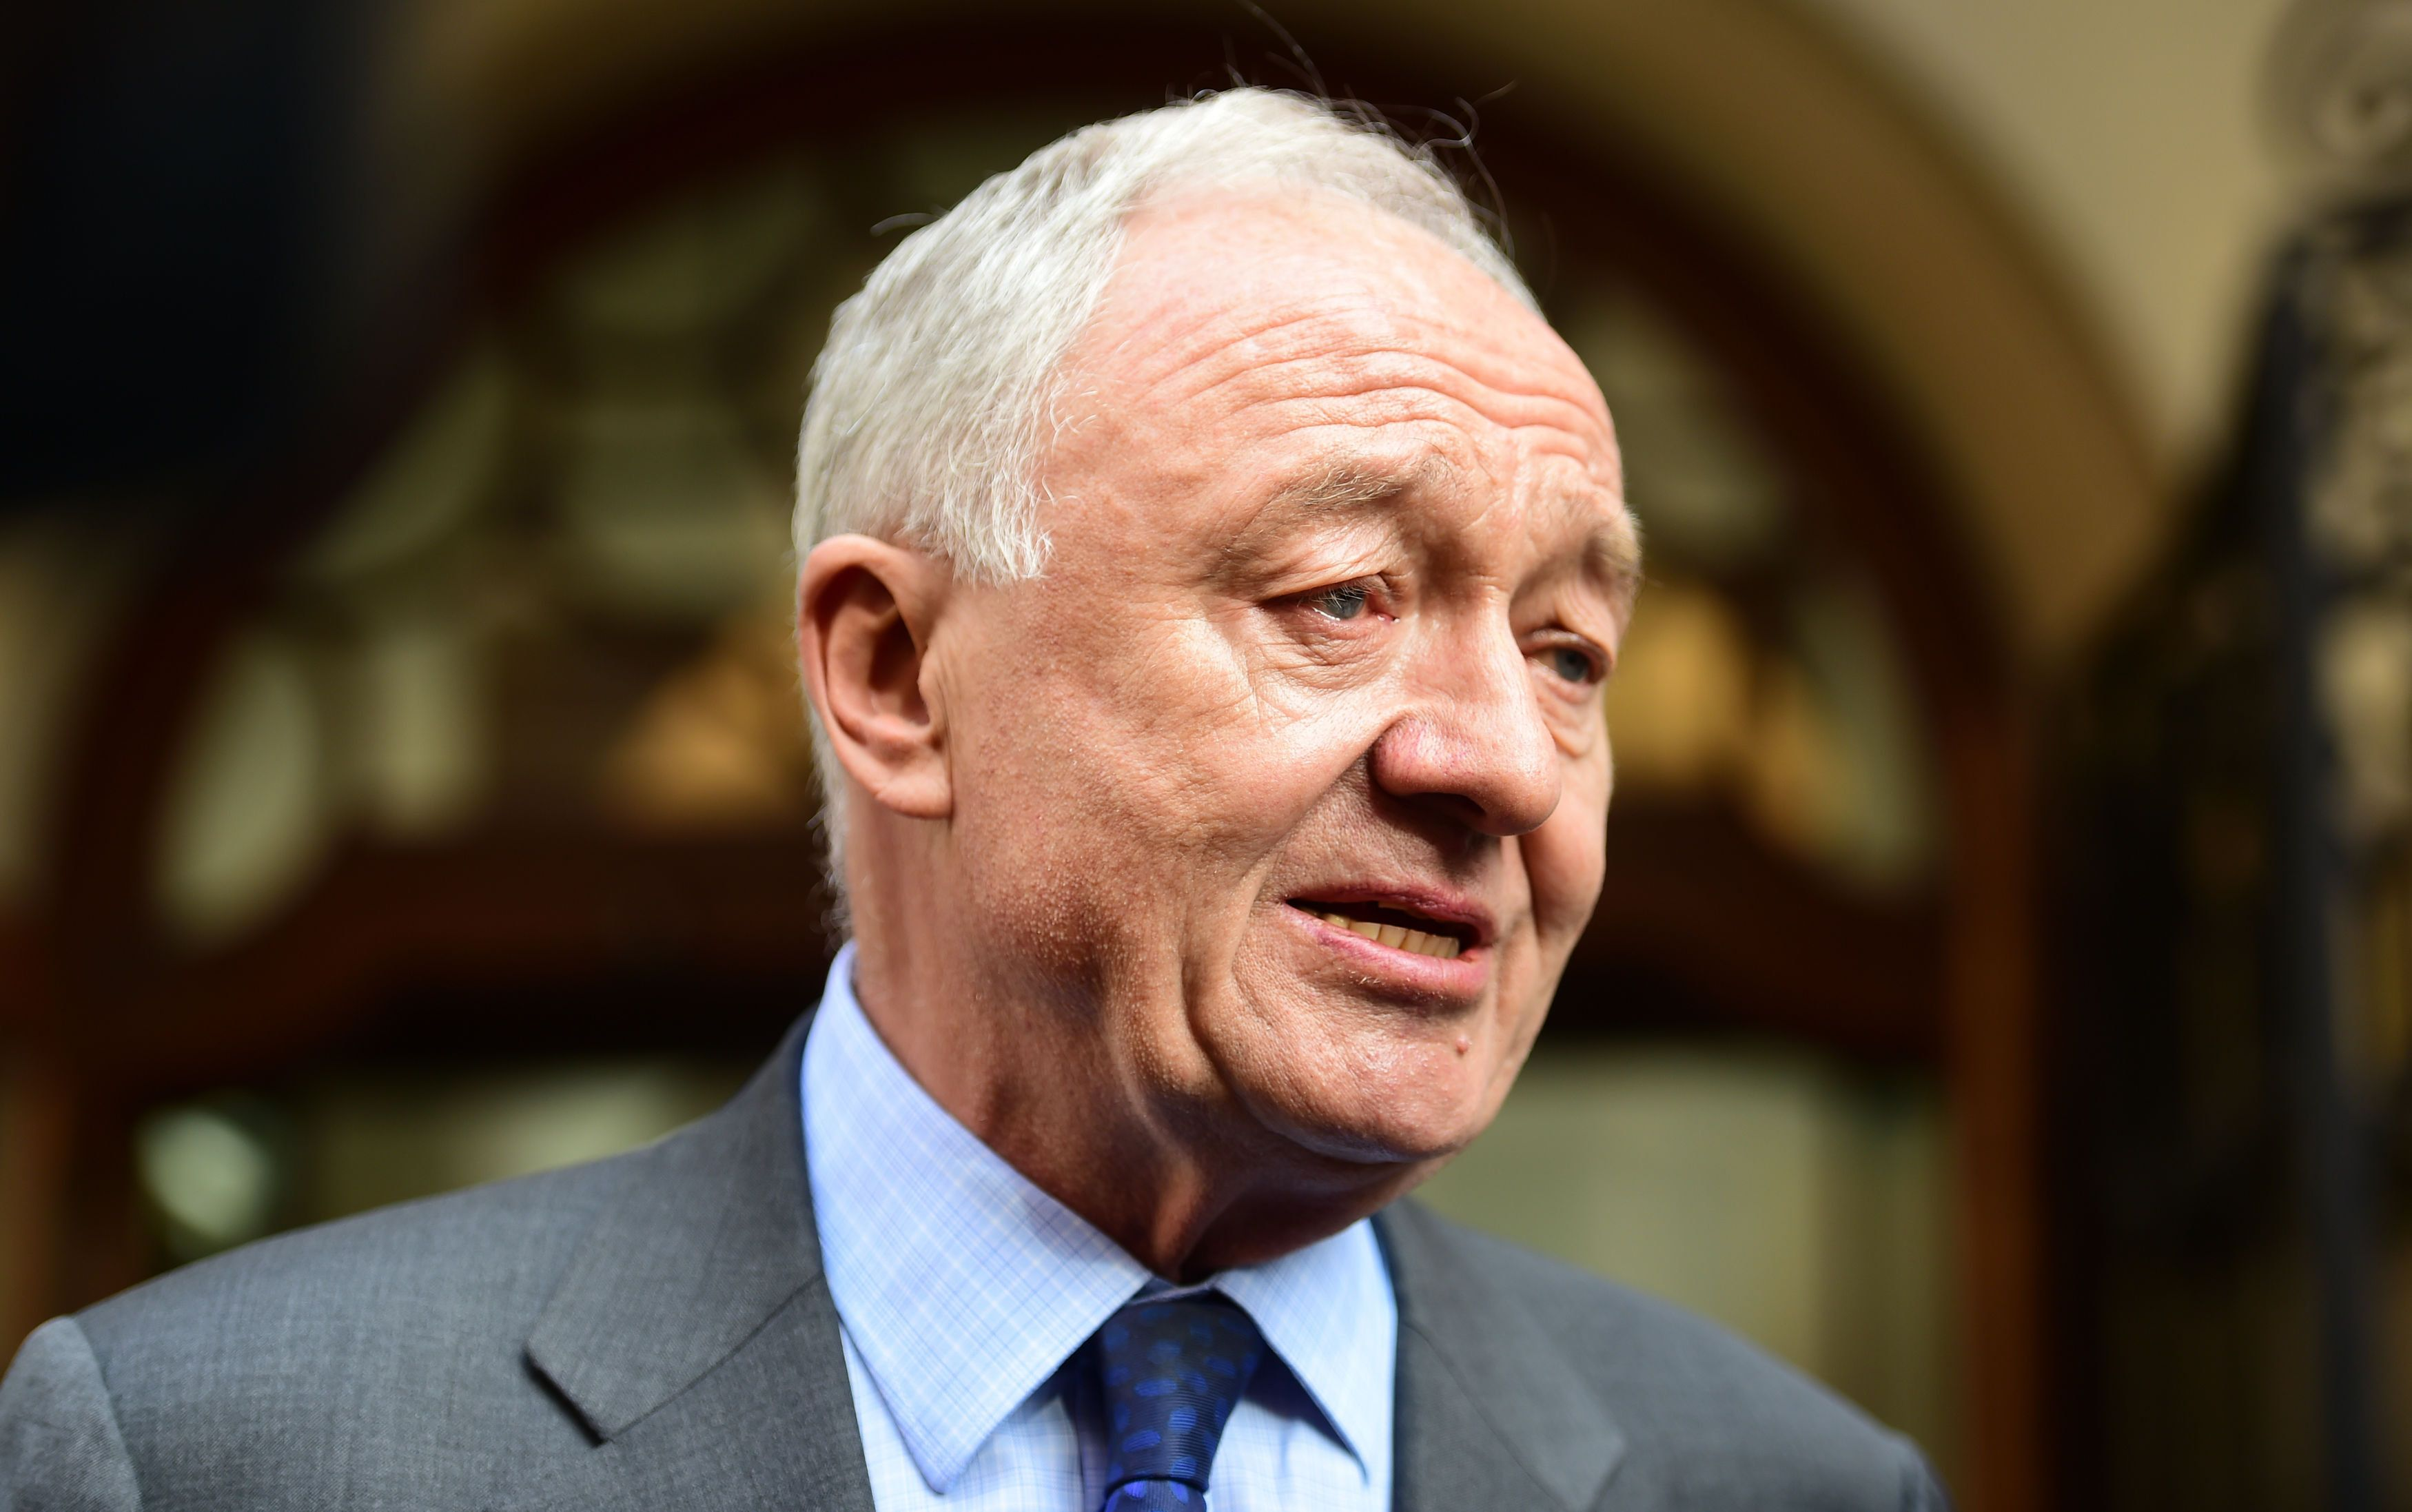 Former Mayor Ken Livingstone's anti-Semitism suspension extended